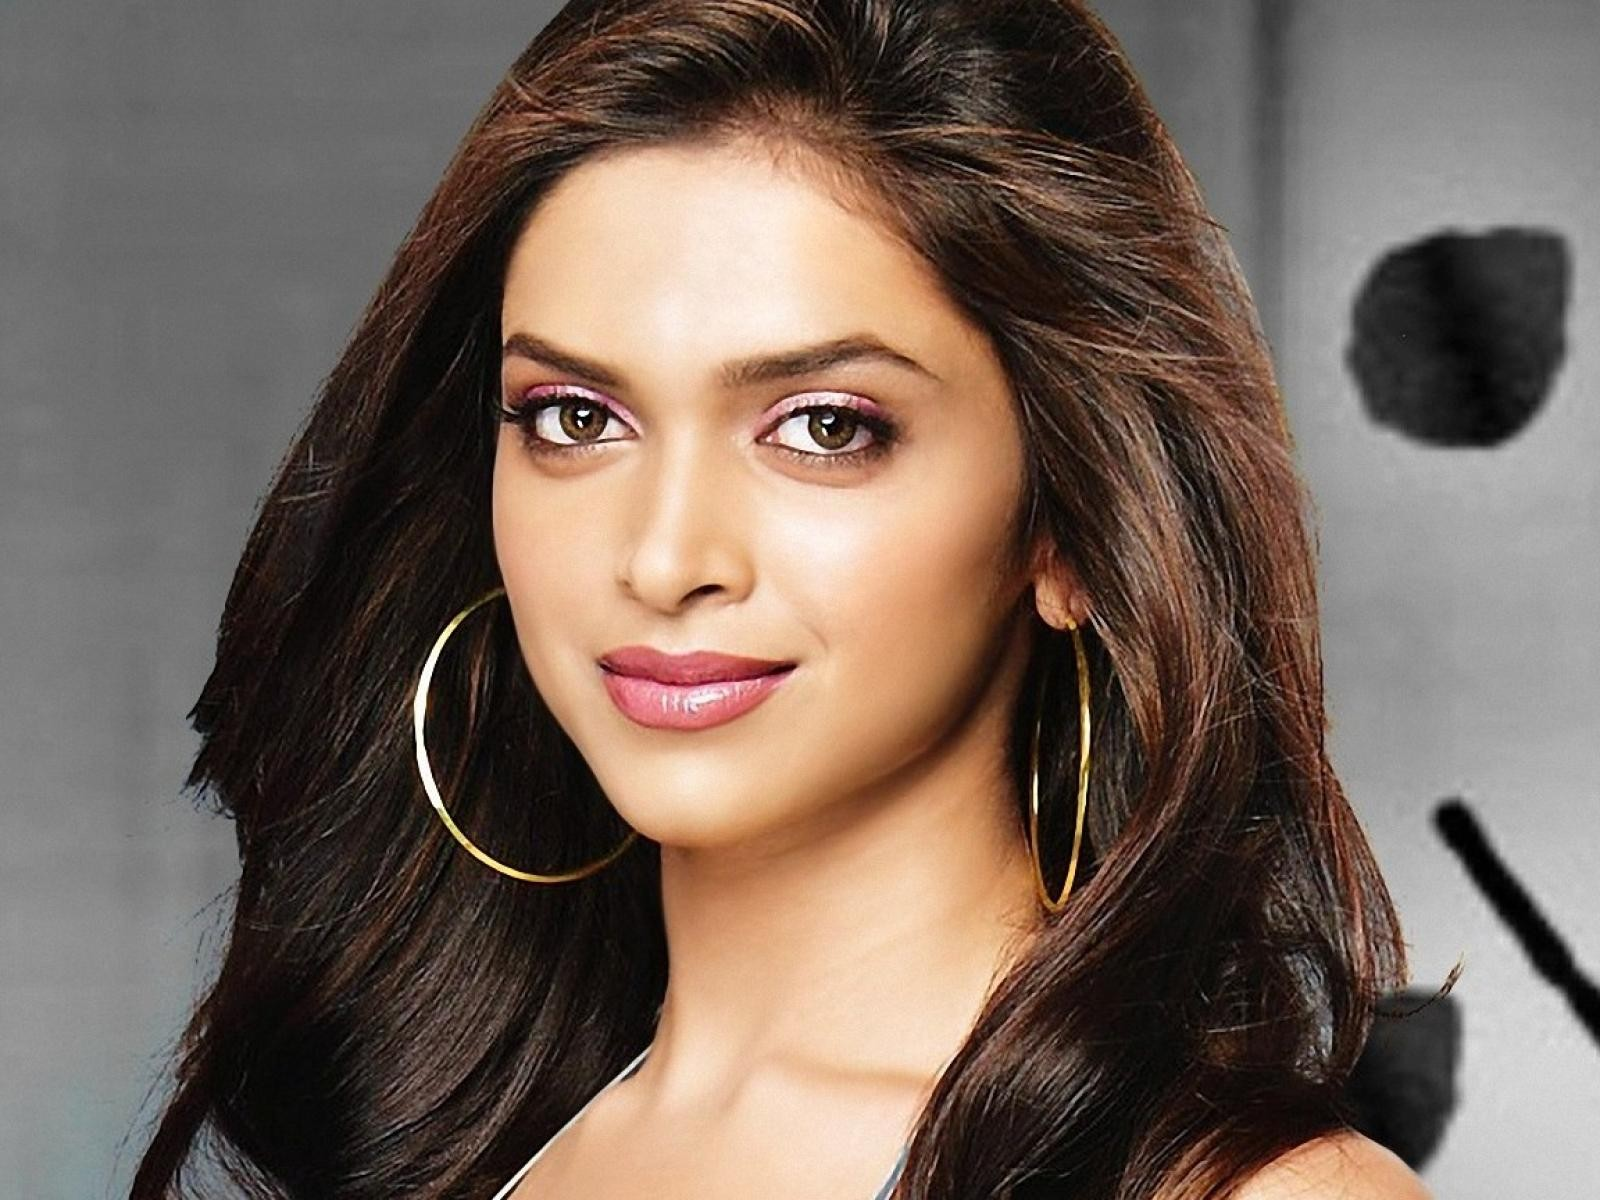 Deepika Padukone Biography, Height, Weight, Age, Wiki, BoyFriend, Marriage, News, Personal Profile, Movies List, Upcoming Films & More